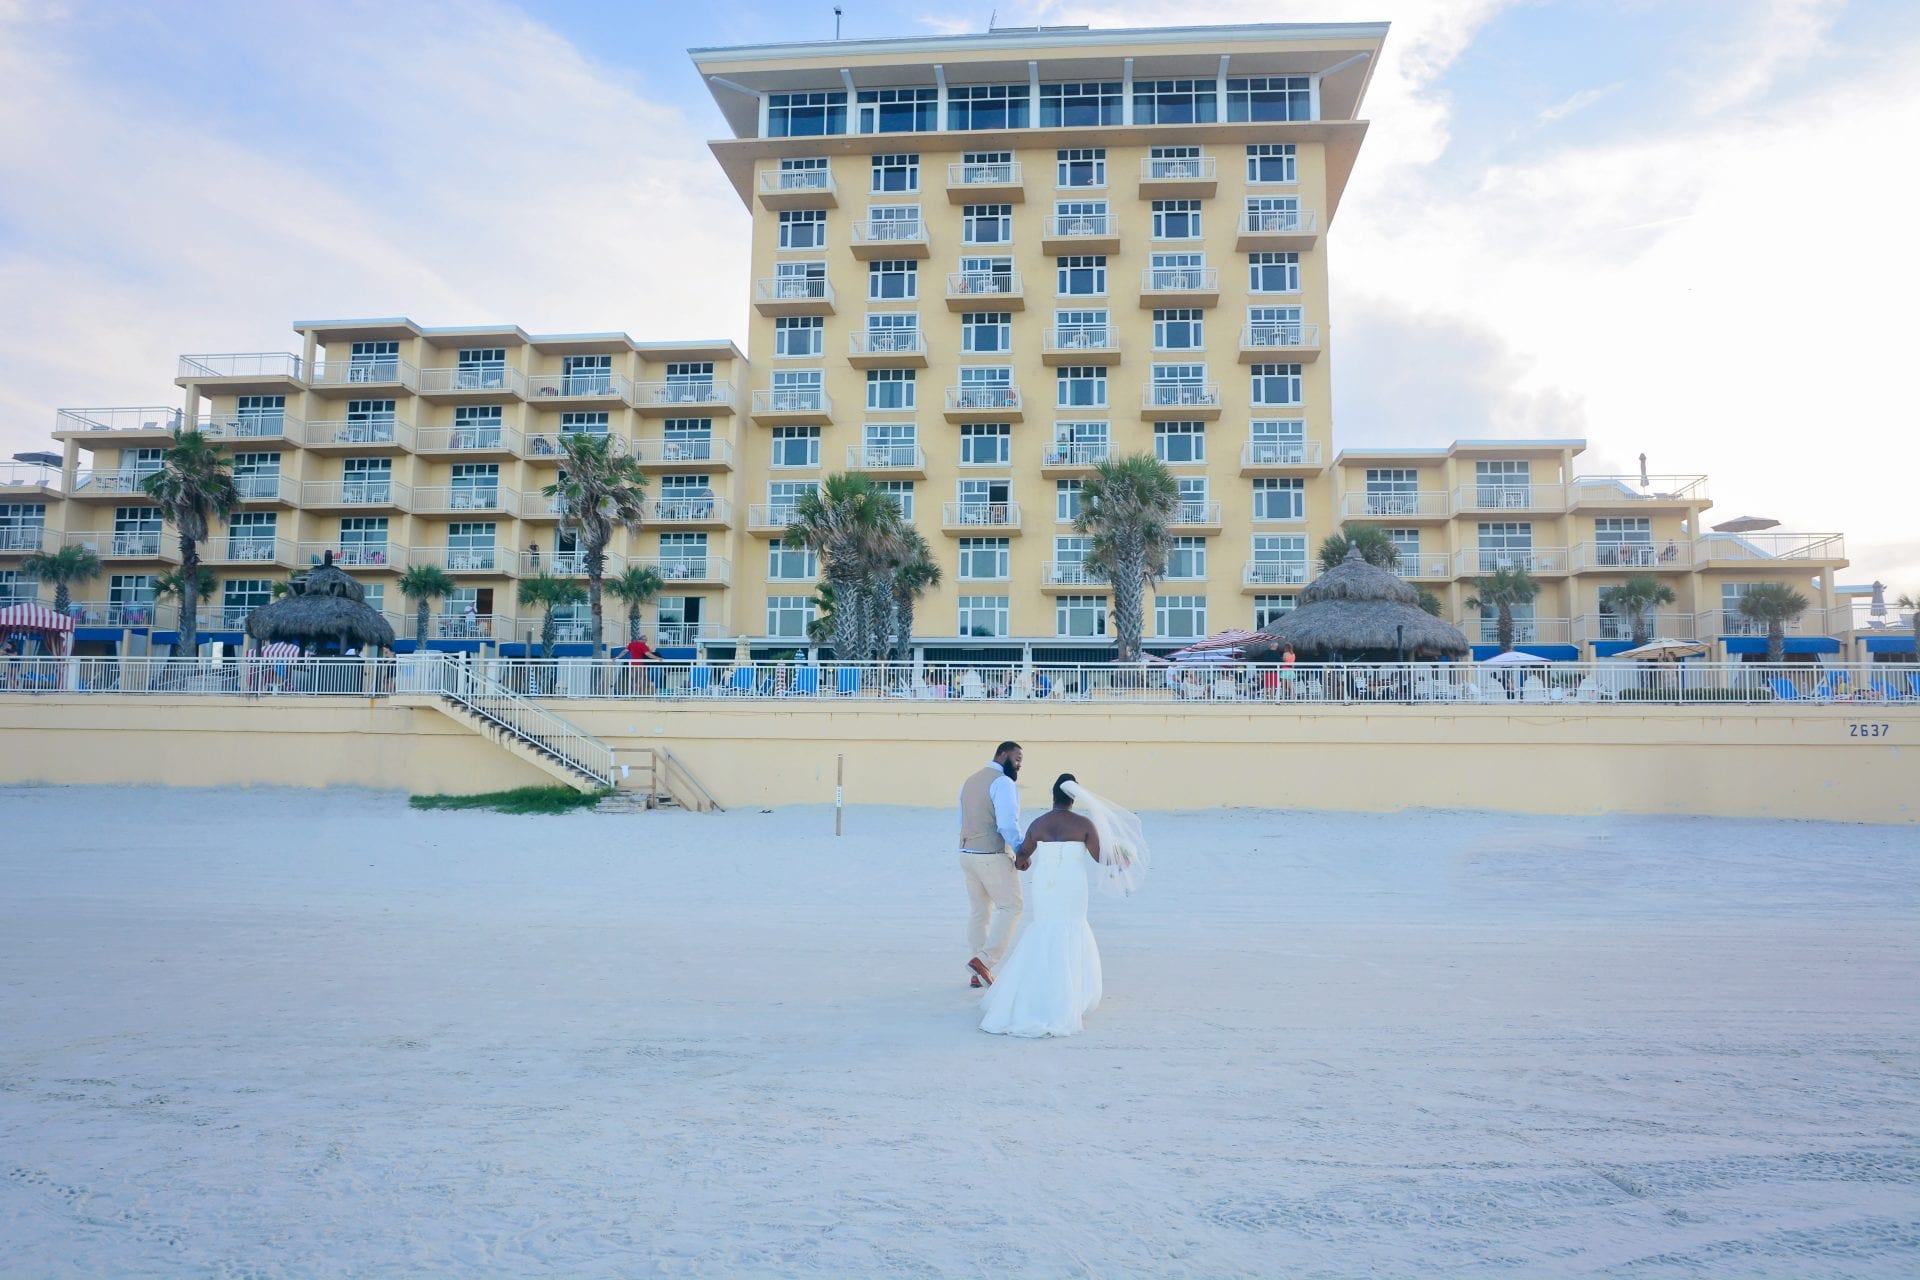 The Shores Hotel & Spa, Daytona Beach, Florida